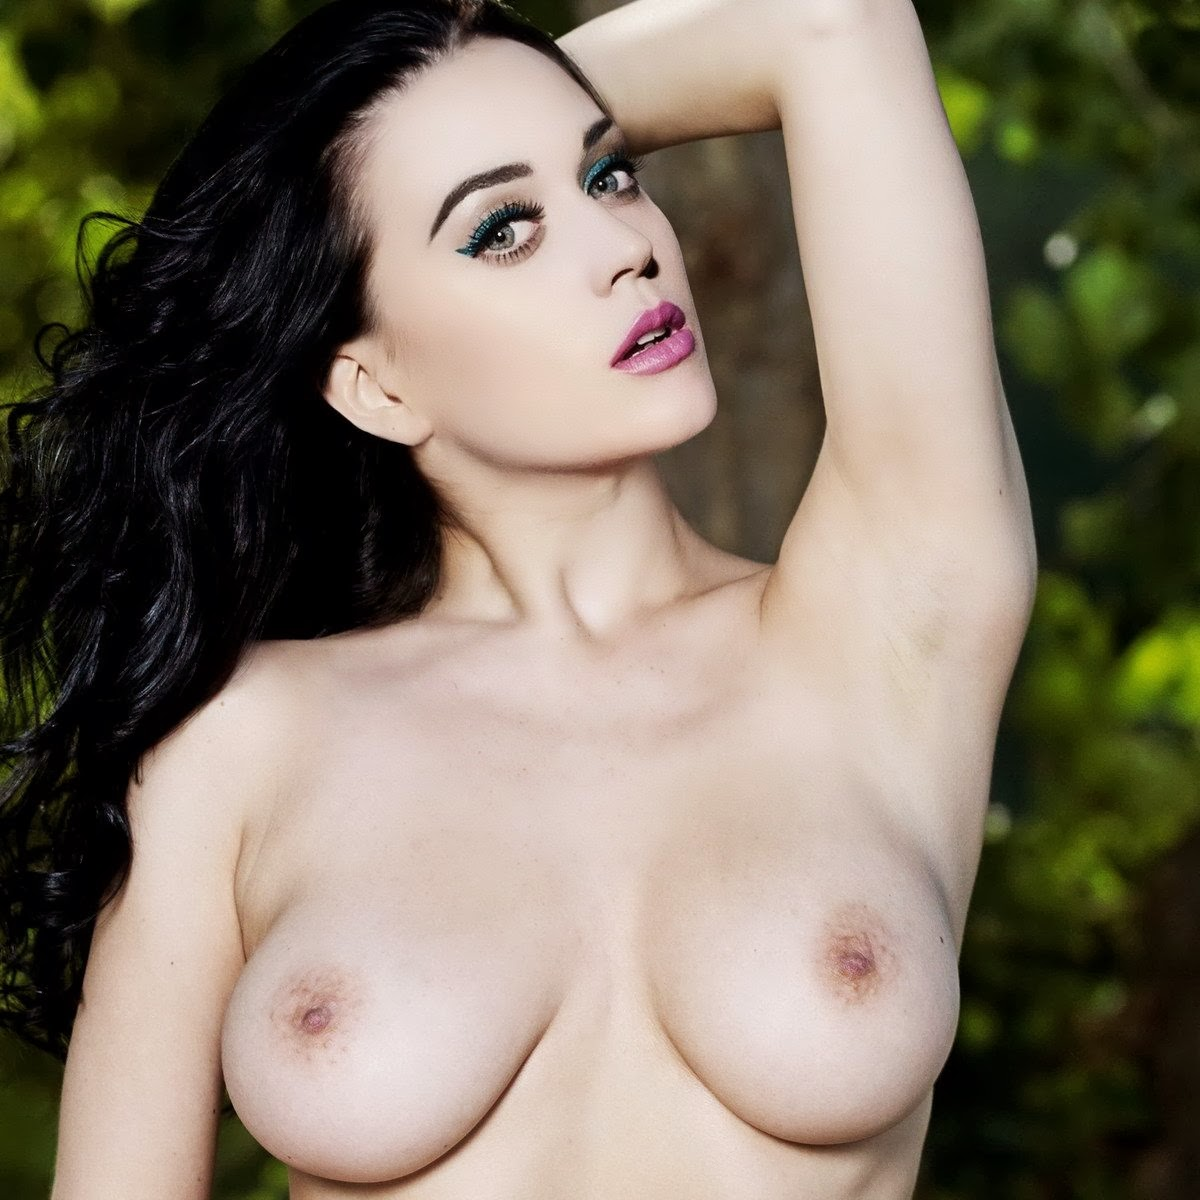 katy perry hot naked spread legs hot girls